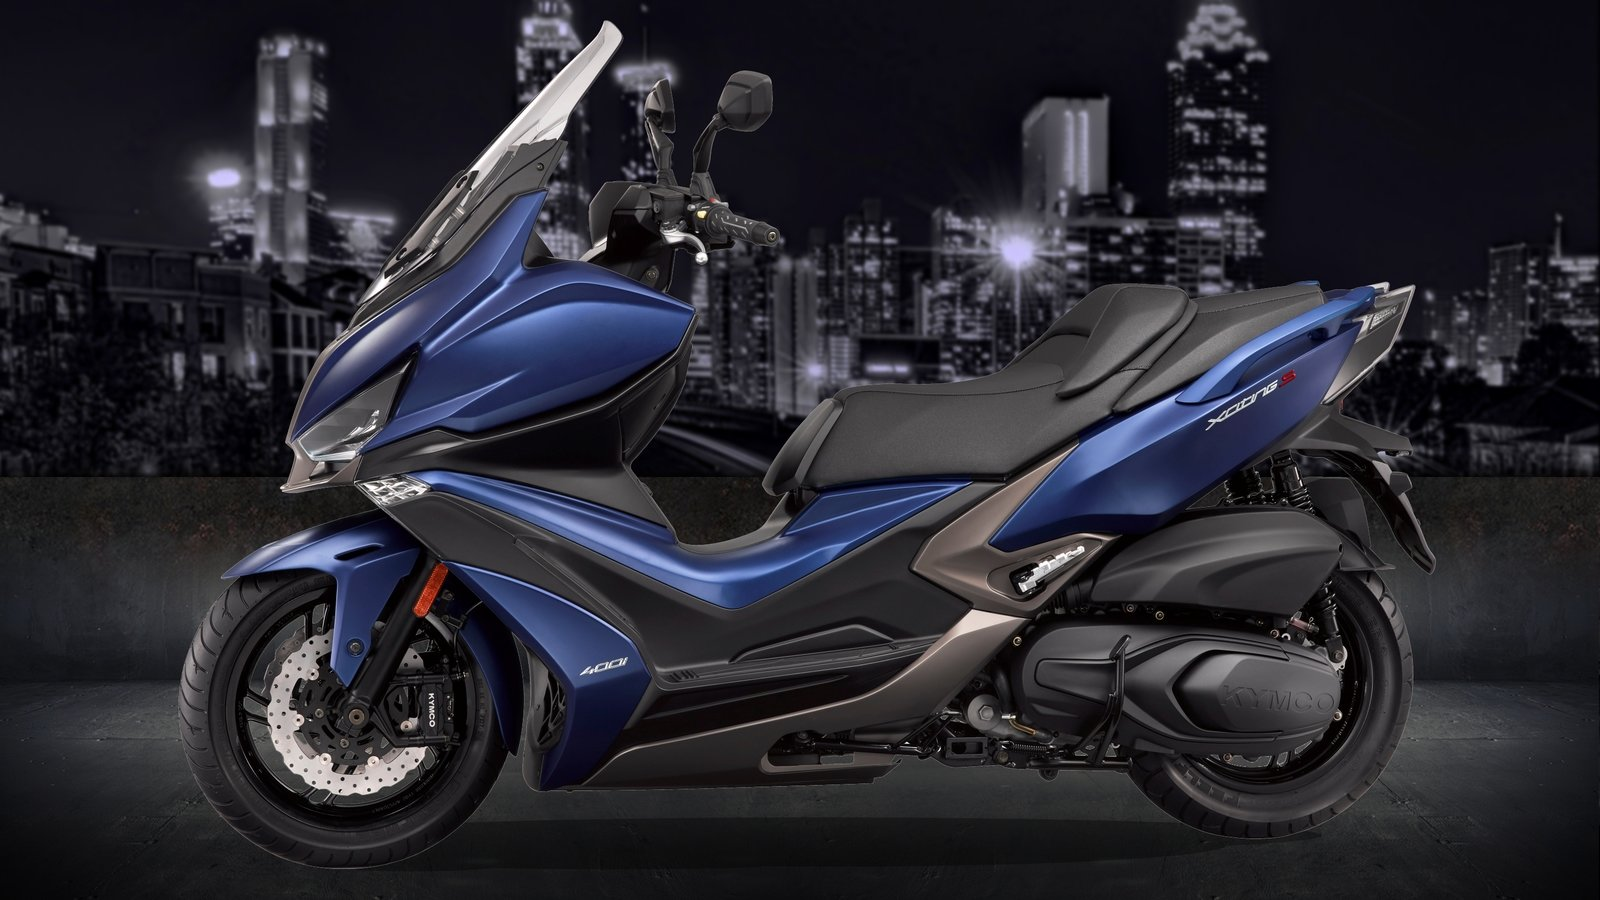 2018 KYMCO Xciting 400i Pictures, Photos, Wallpapers